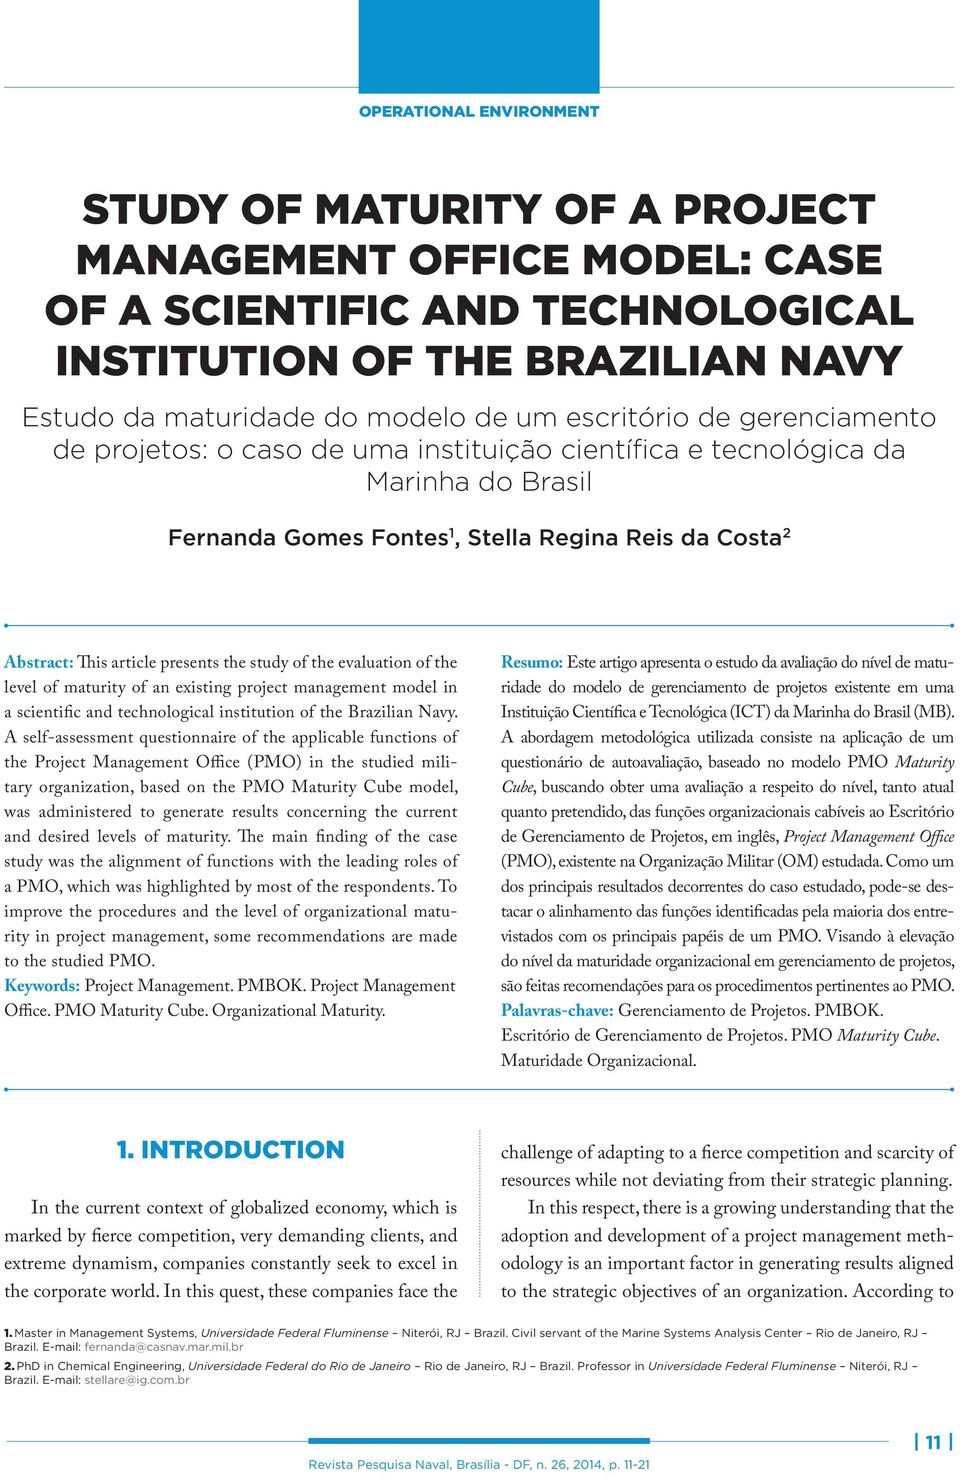 the study of the evaluation of the level of maturity of an existing project management model in a scientific and technological institution of the Brazilian Navy.